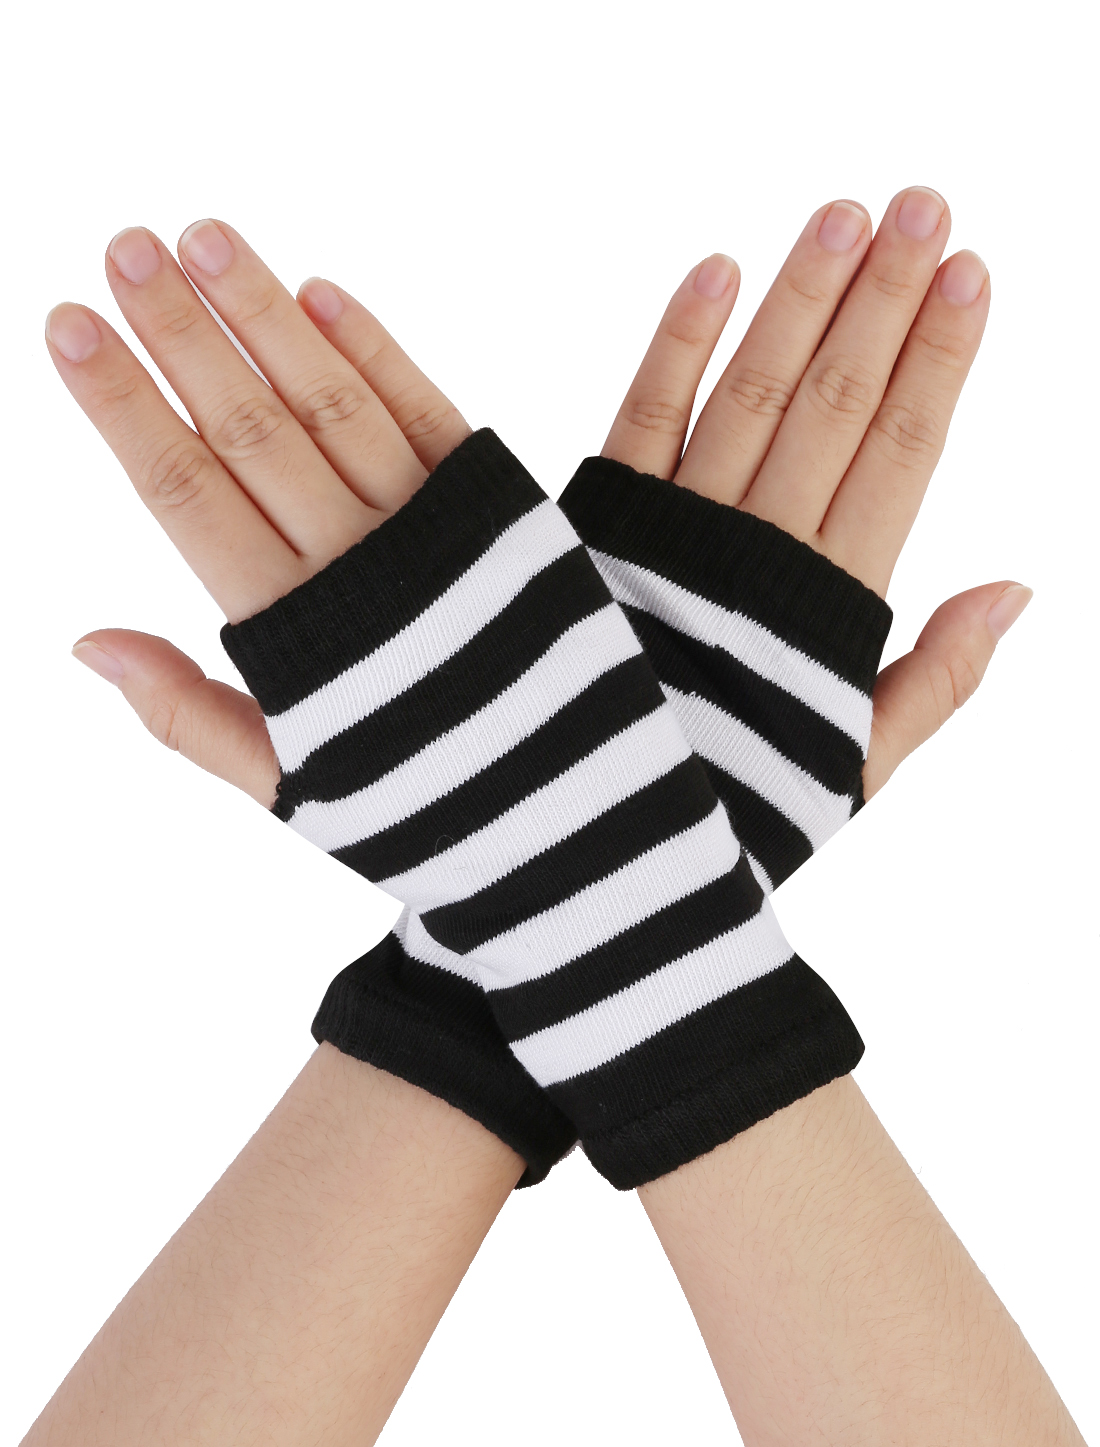 Pair White Black Knitted Stretchy Fingerless Winter Gloves for Woman